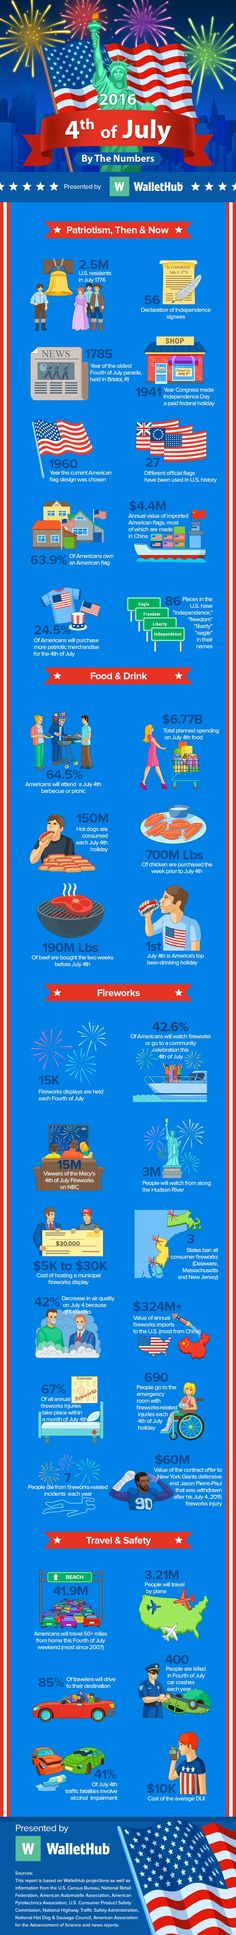 Infographic Of The Day: 4th Of July 2016